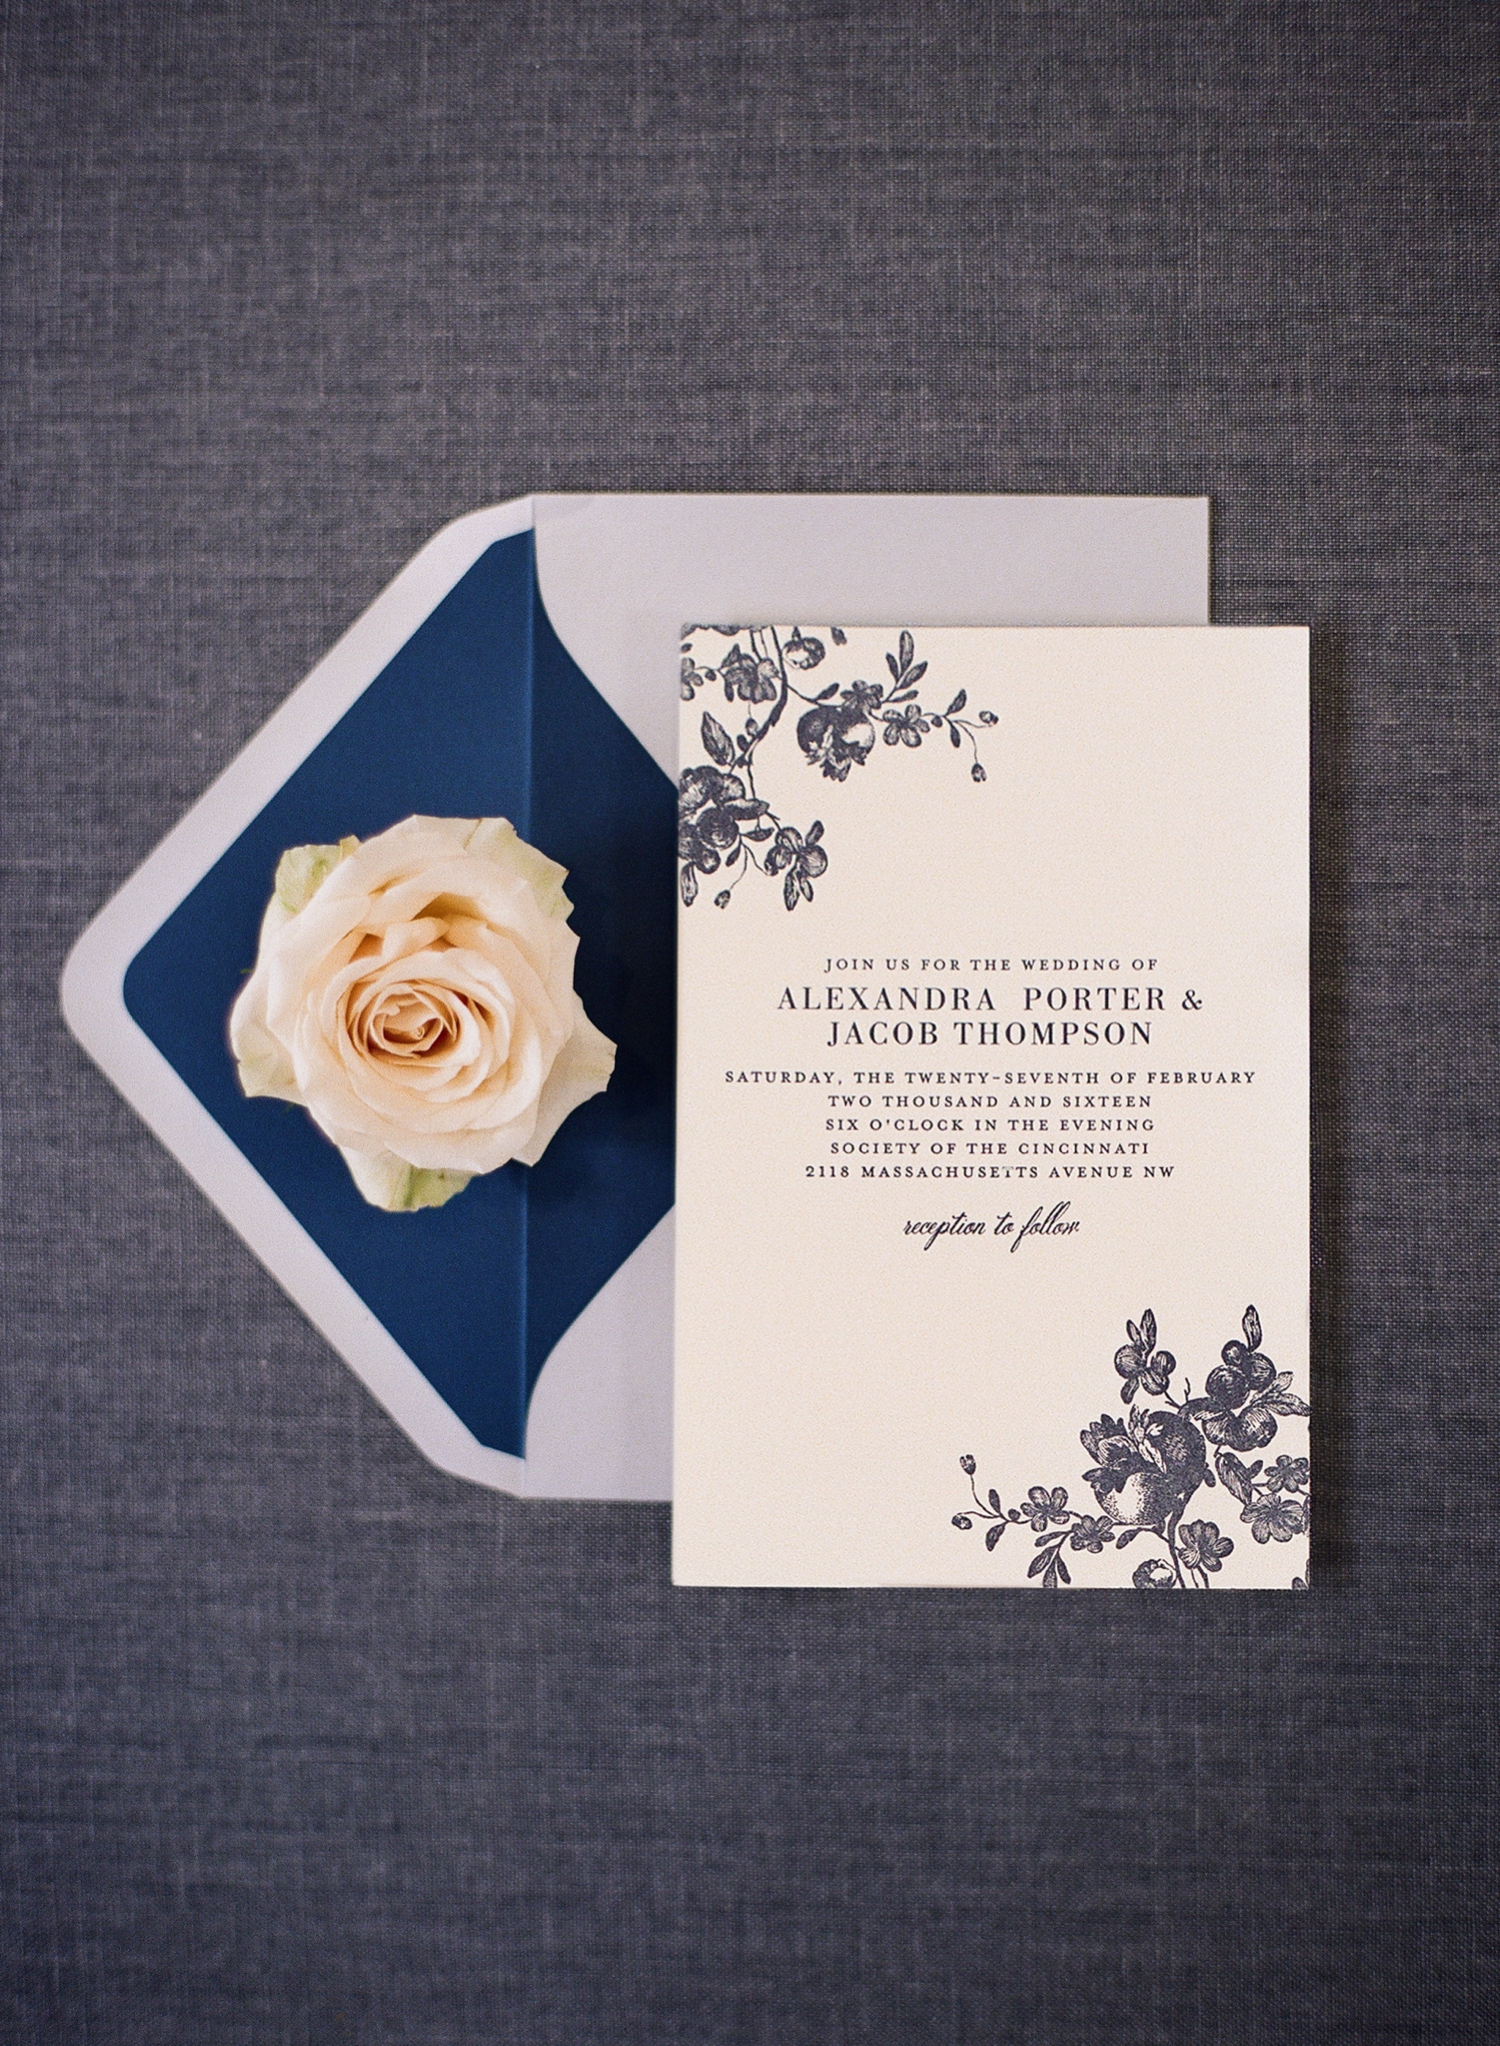 fine art invitation styling, letterpress from Wedding Paper Divas